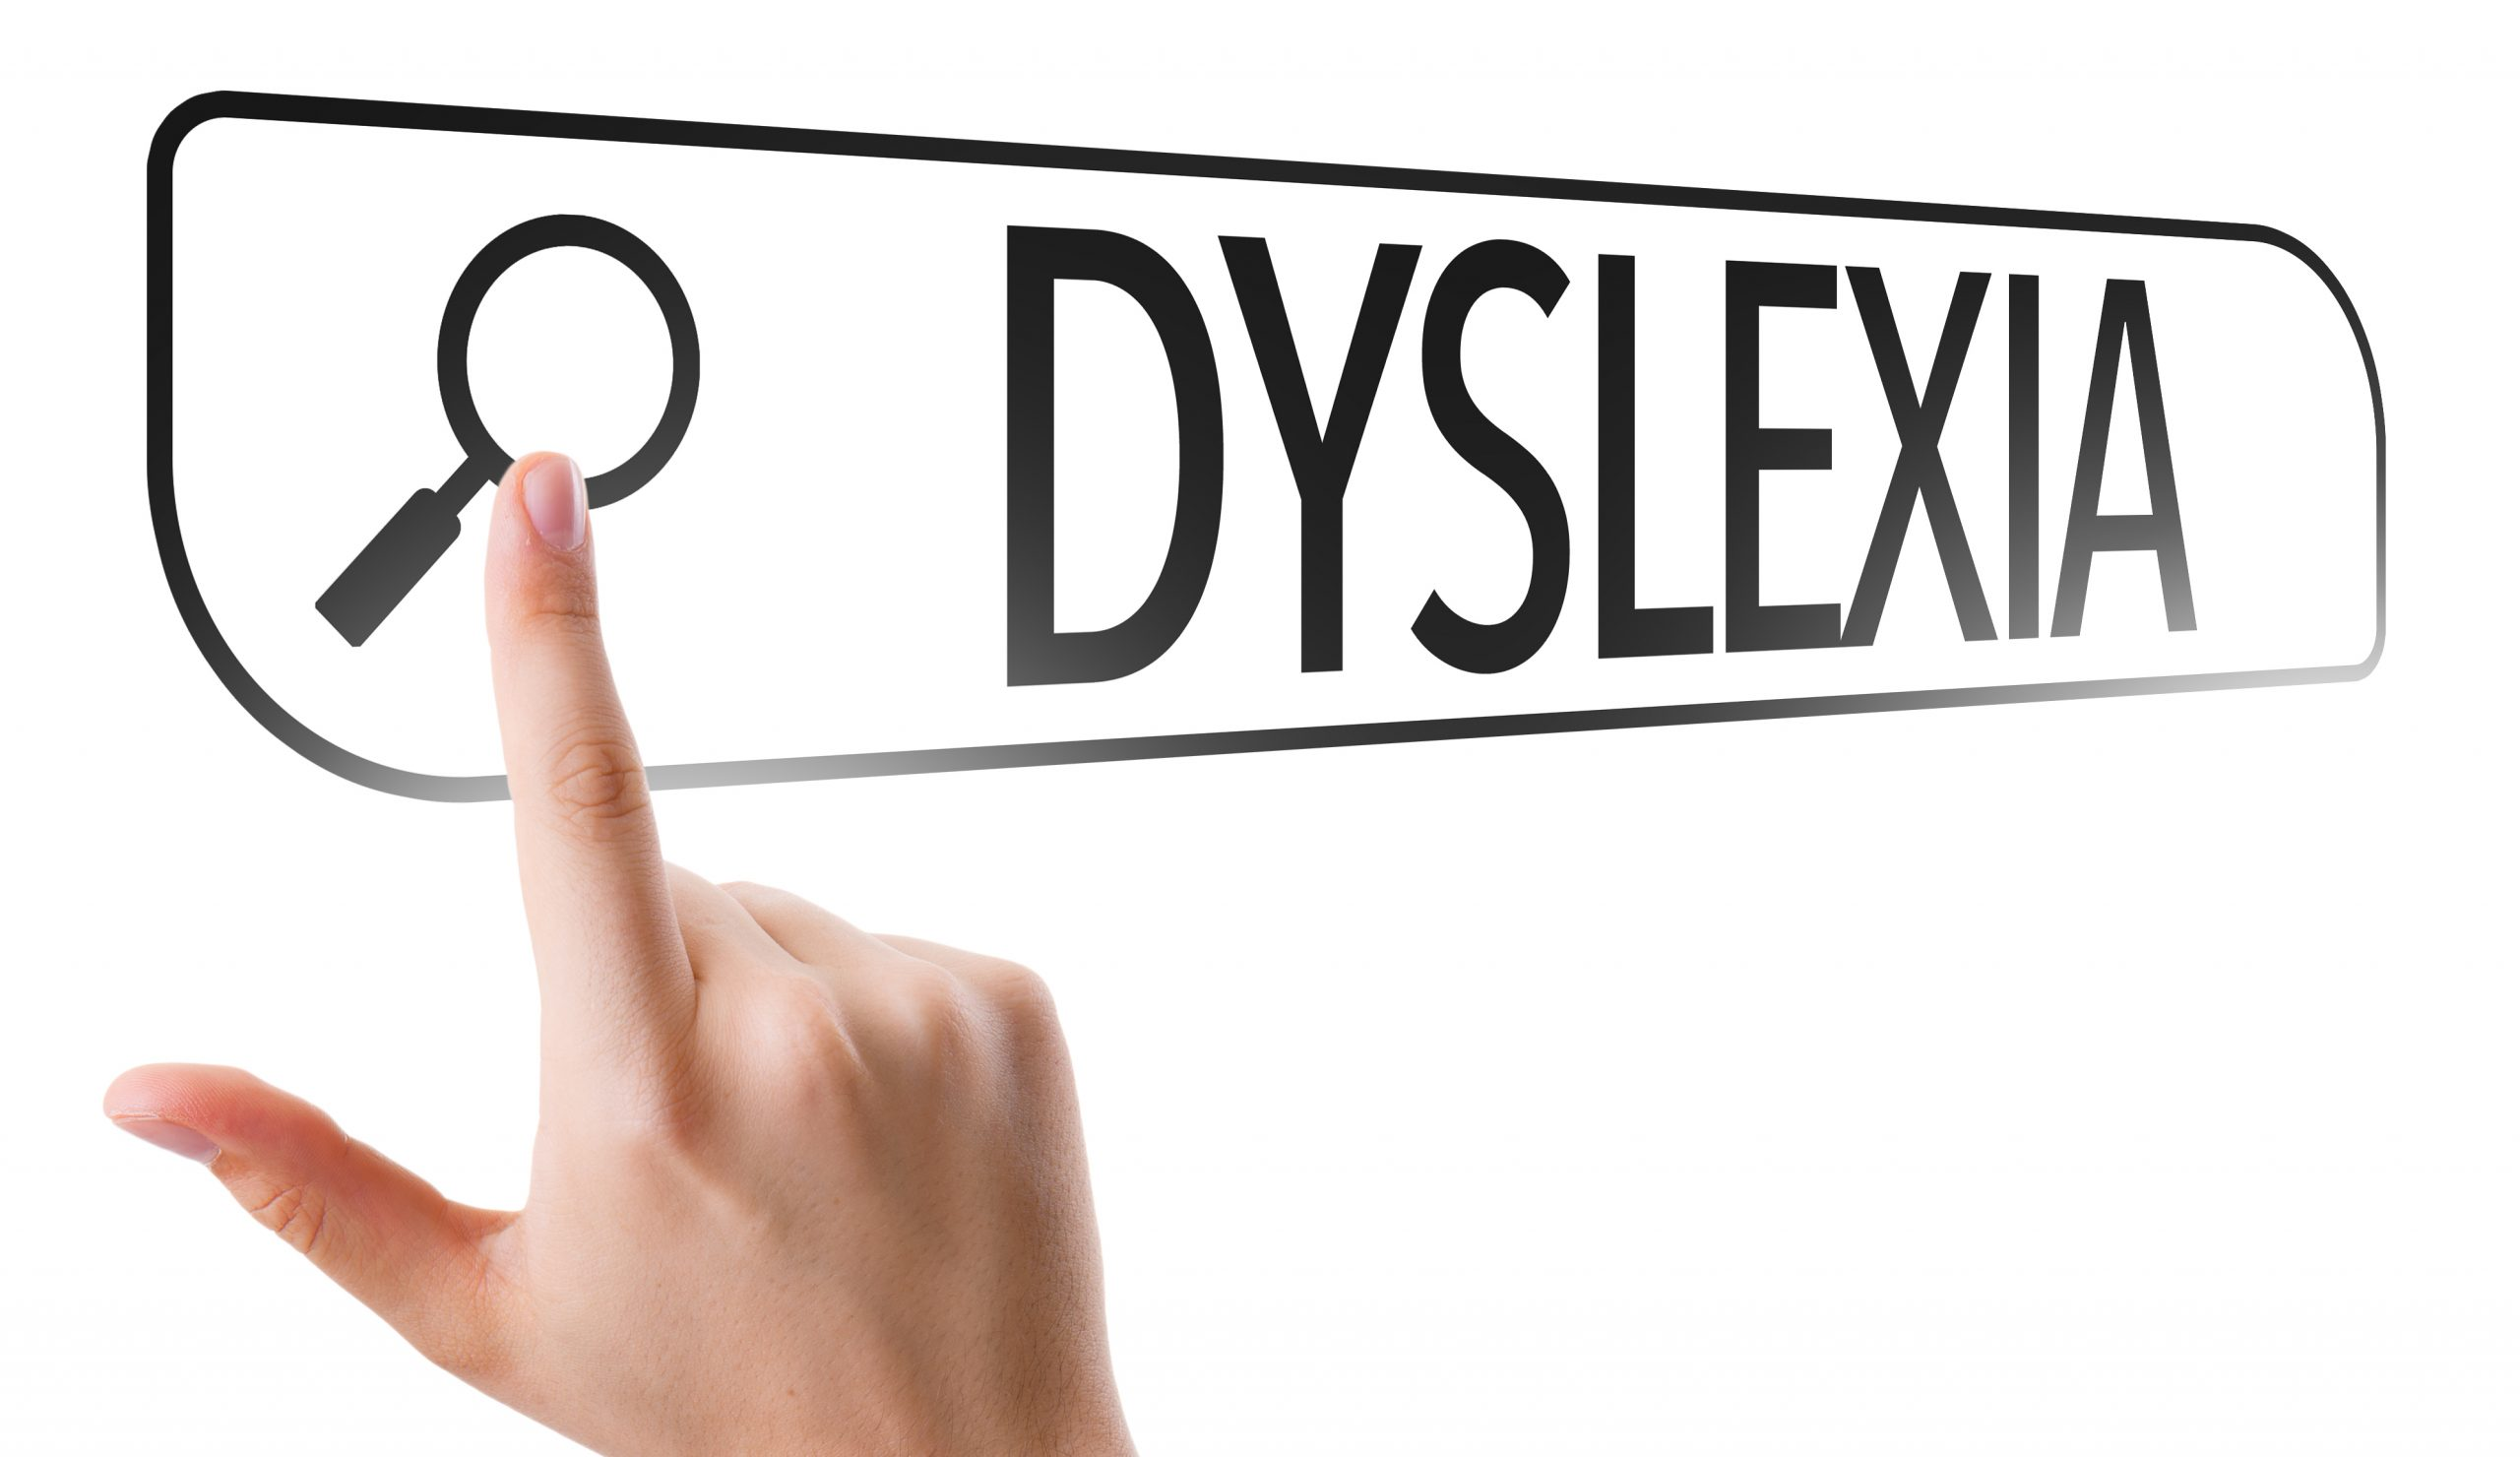 Please do not let dyslexia hold you back